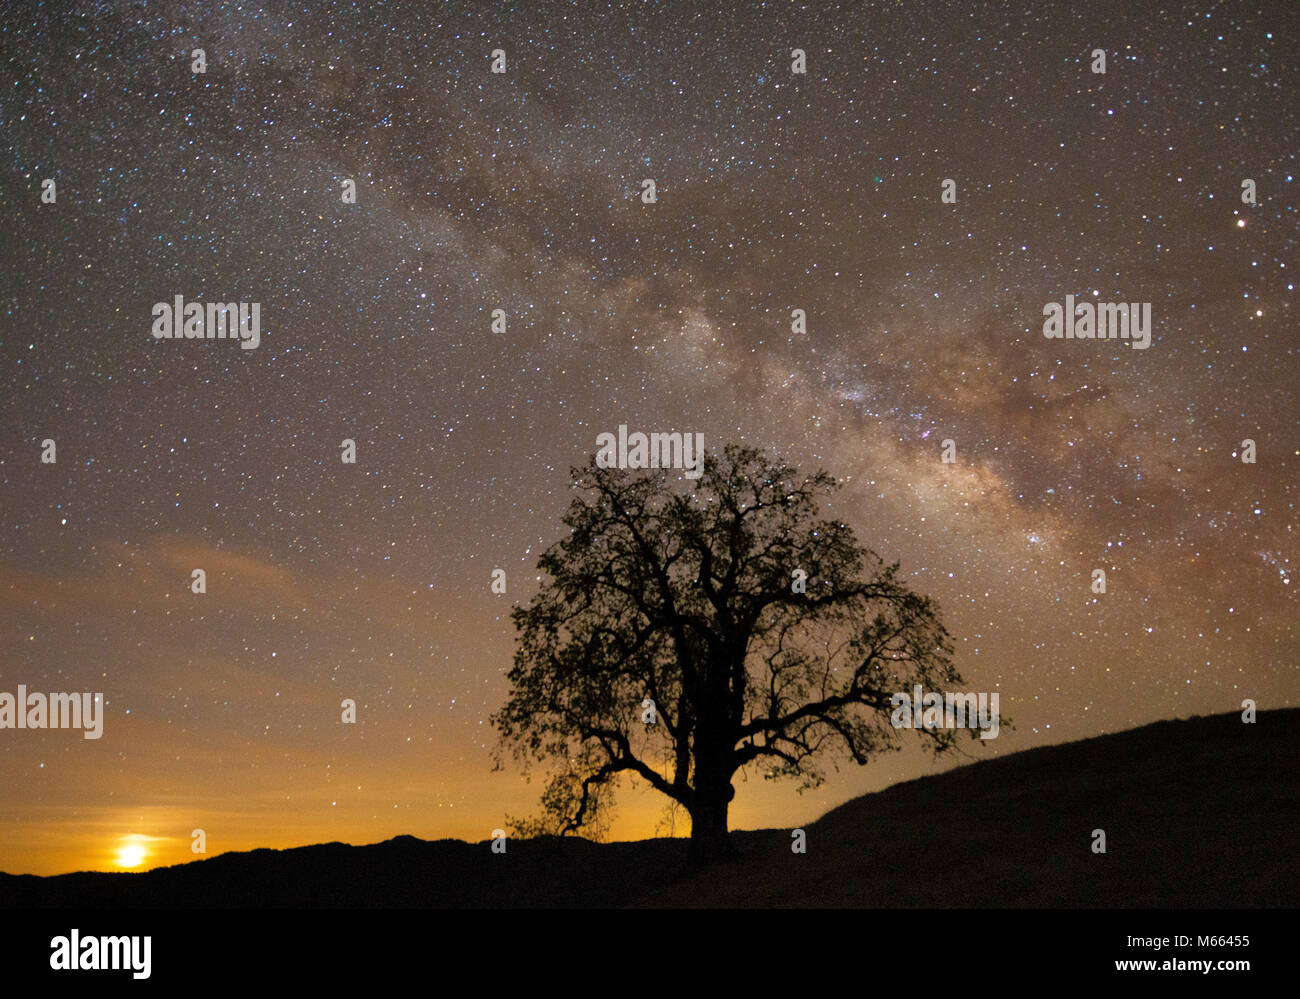 Milky Way, Moonrise, Coast Live Oak, Quercus agrifolia, Los Padres National Forest, Monterey County, California - Stock Image